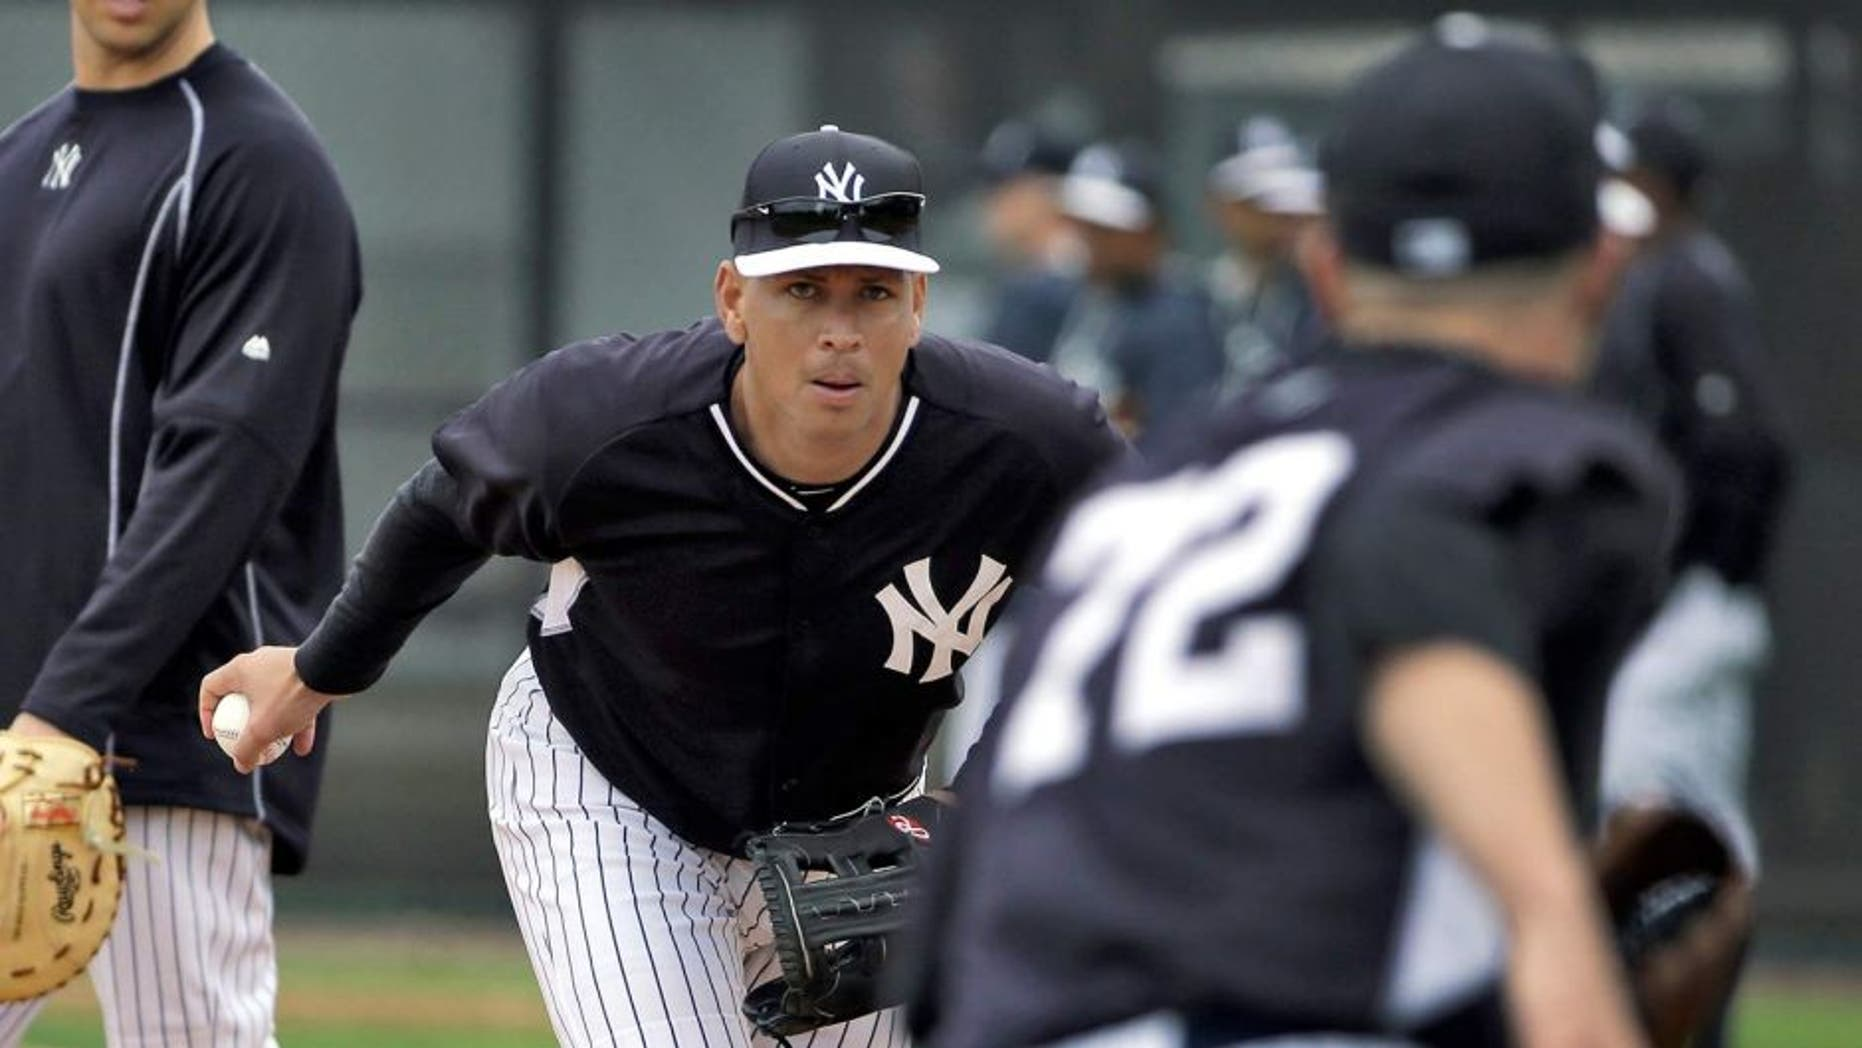 New York Yankees' Alex Rodriguez, center, flips the ball to pitcher Danny Burawa, right, as Mark Teixeira, left, looks on during workouts Friday, Feb. 27, 2015, in Tampa, Fla. Rodriguez was practicing at first base for the first time. (AP Photo/Chris O'Meara)